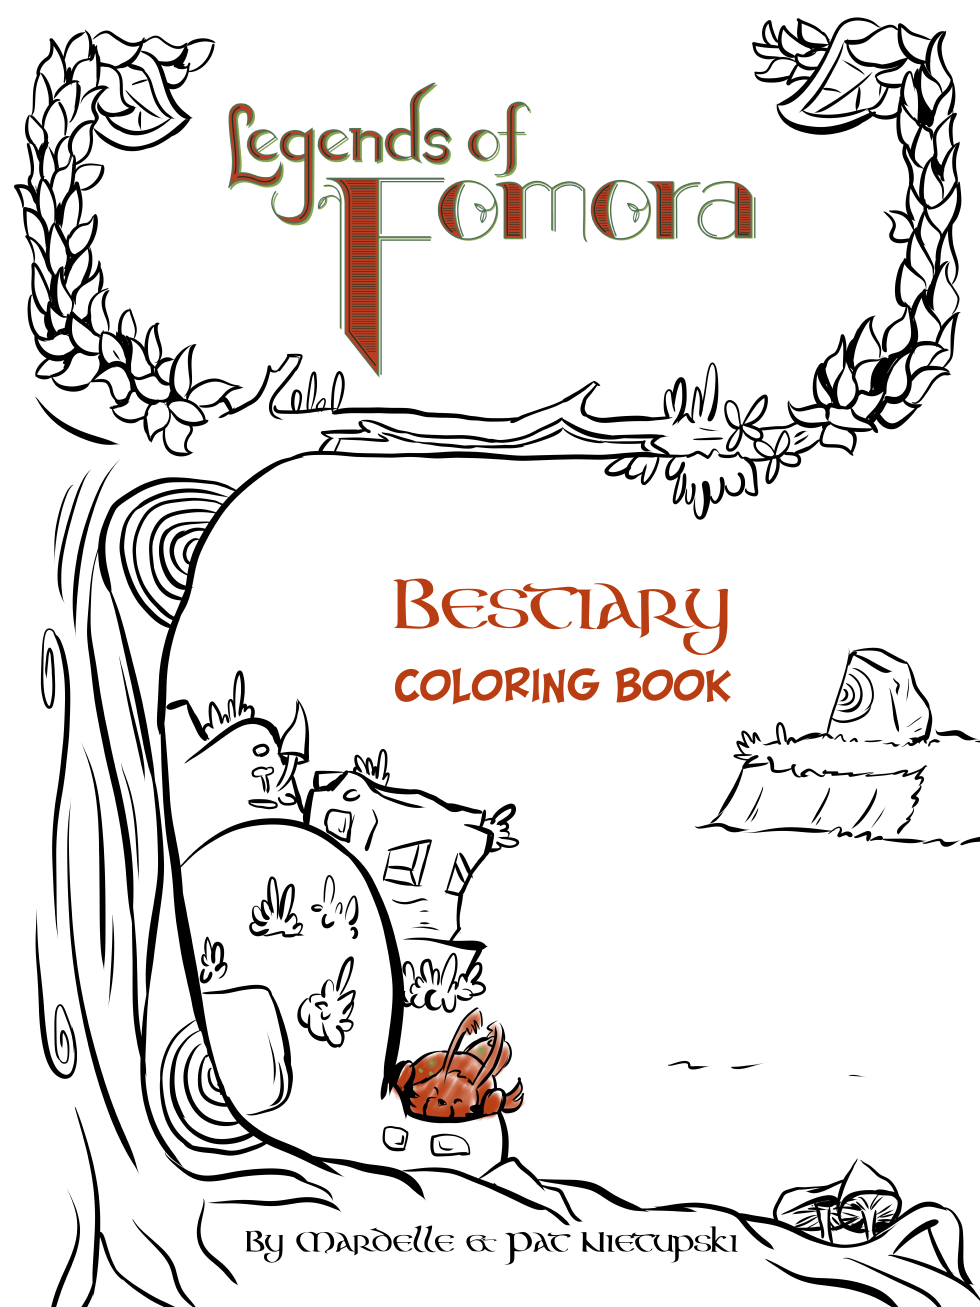 Bestiary Coloring Book on Storenvy